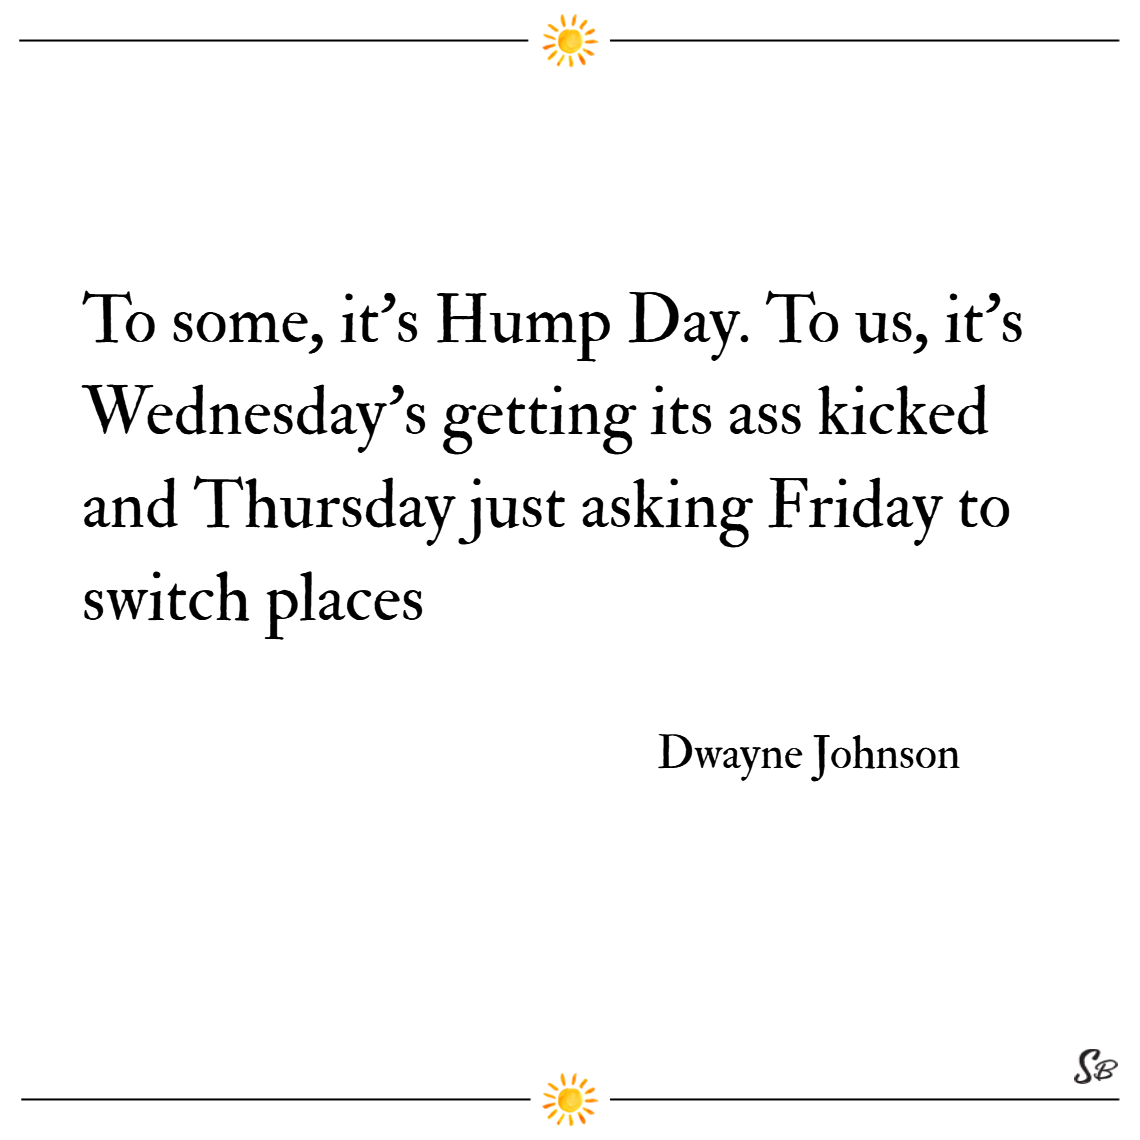 To Some, Itu0027s Hump Day. To Us, Itu0027s Wednesdayu0027s Getting Its Ass Kicked